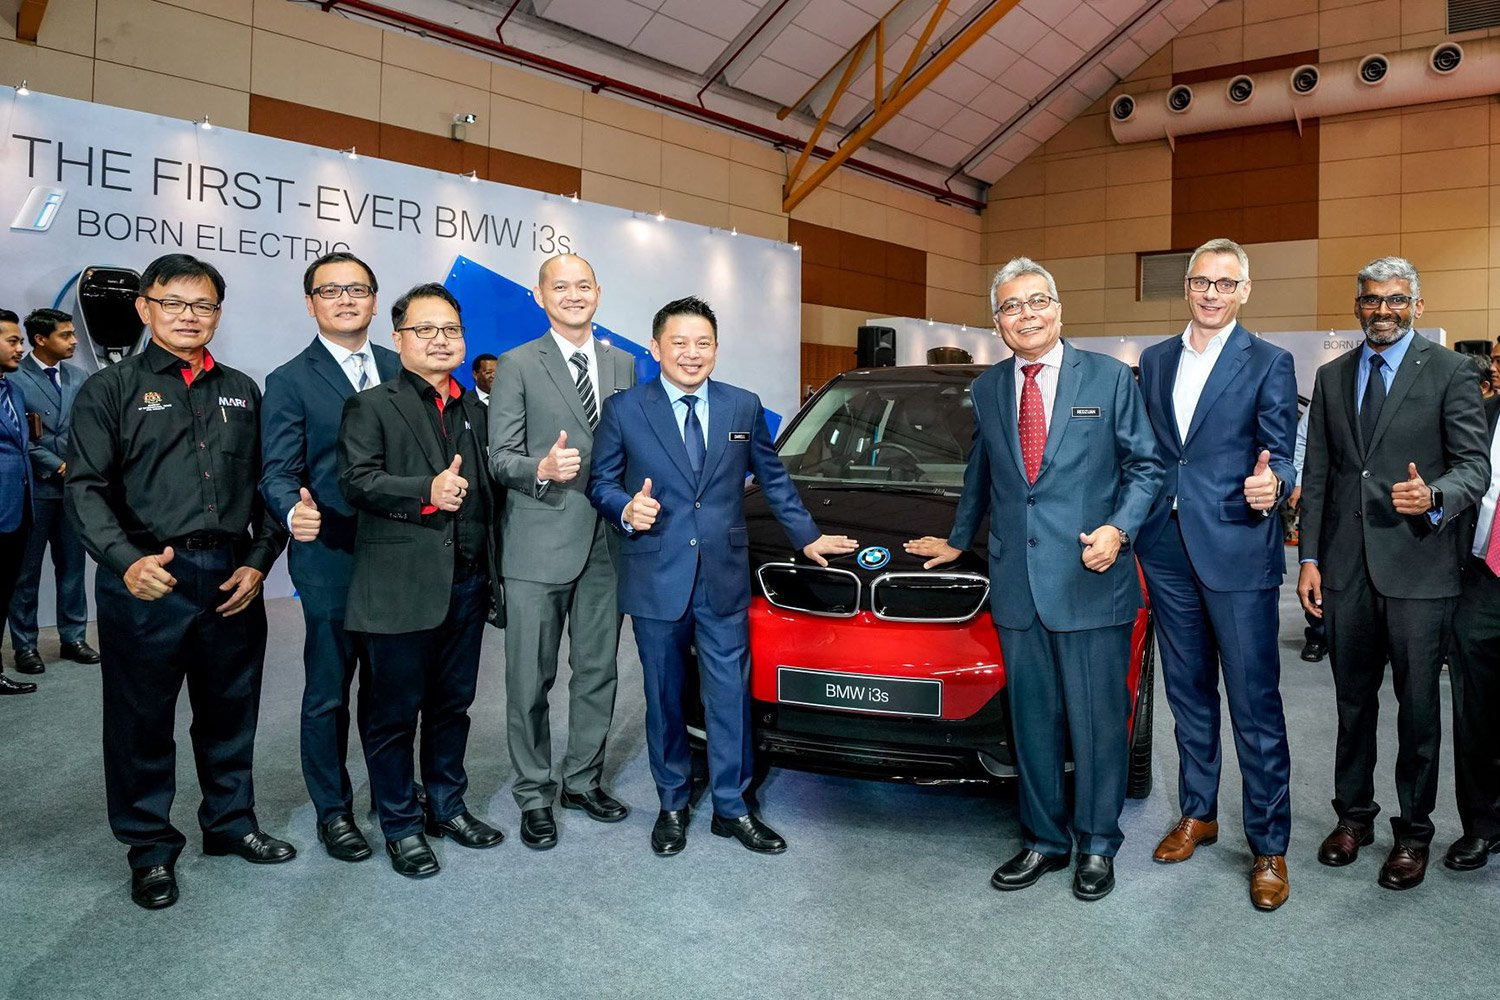 BMW Malaysia presents the First-Ever BMW i3s